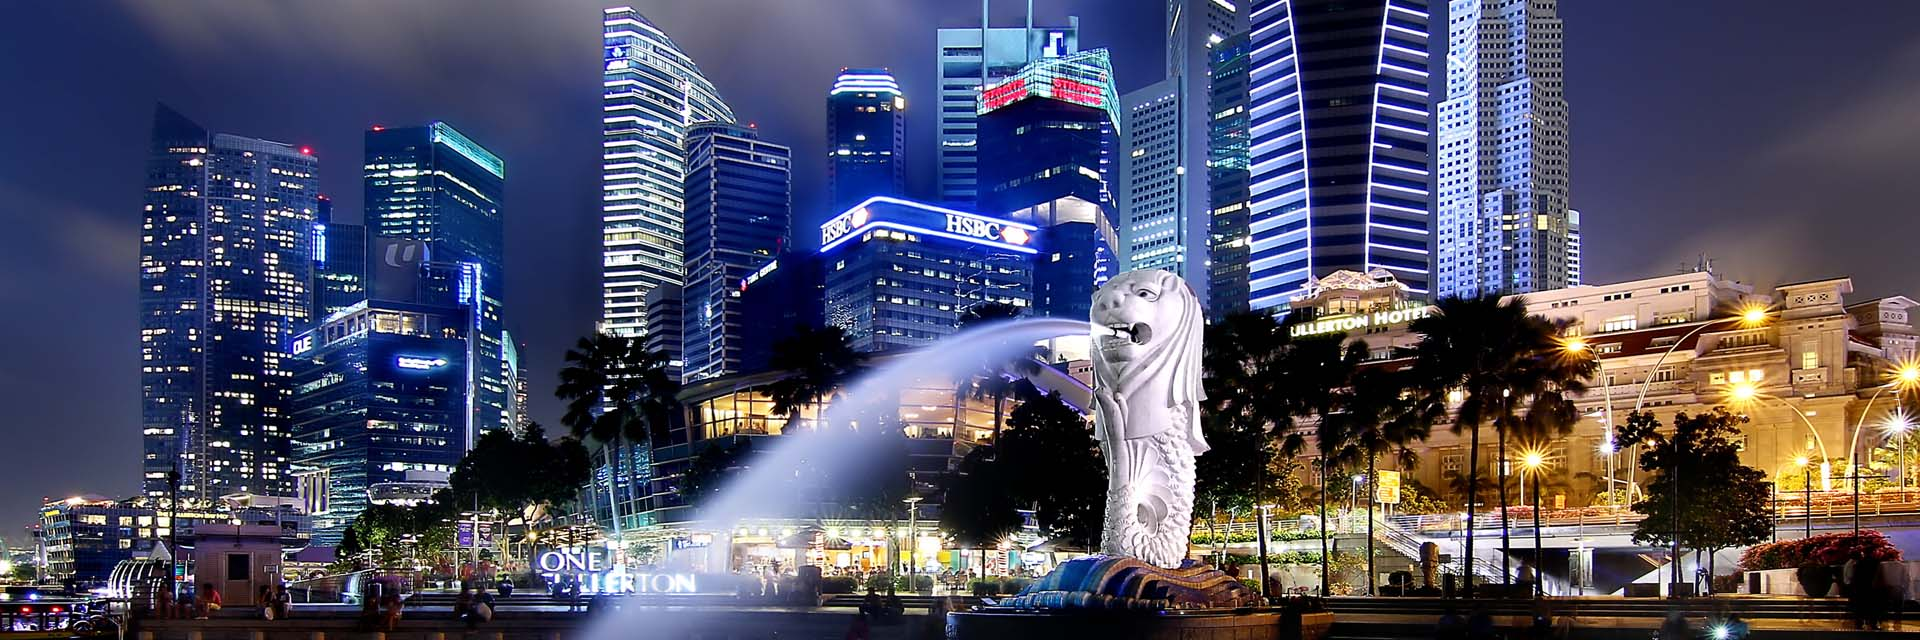 merlion-at-the-bay-singapore